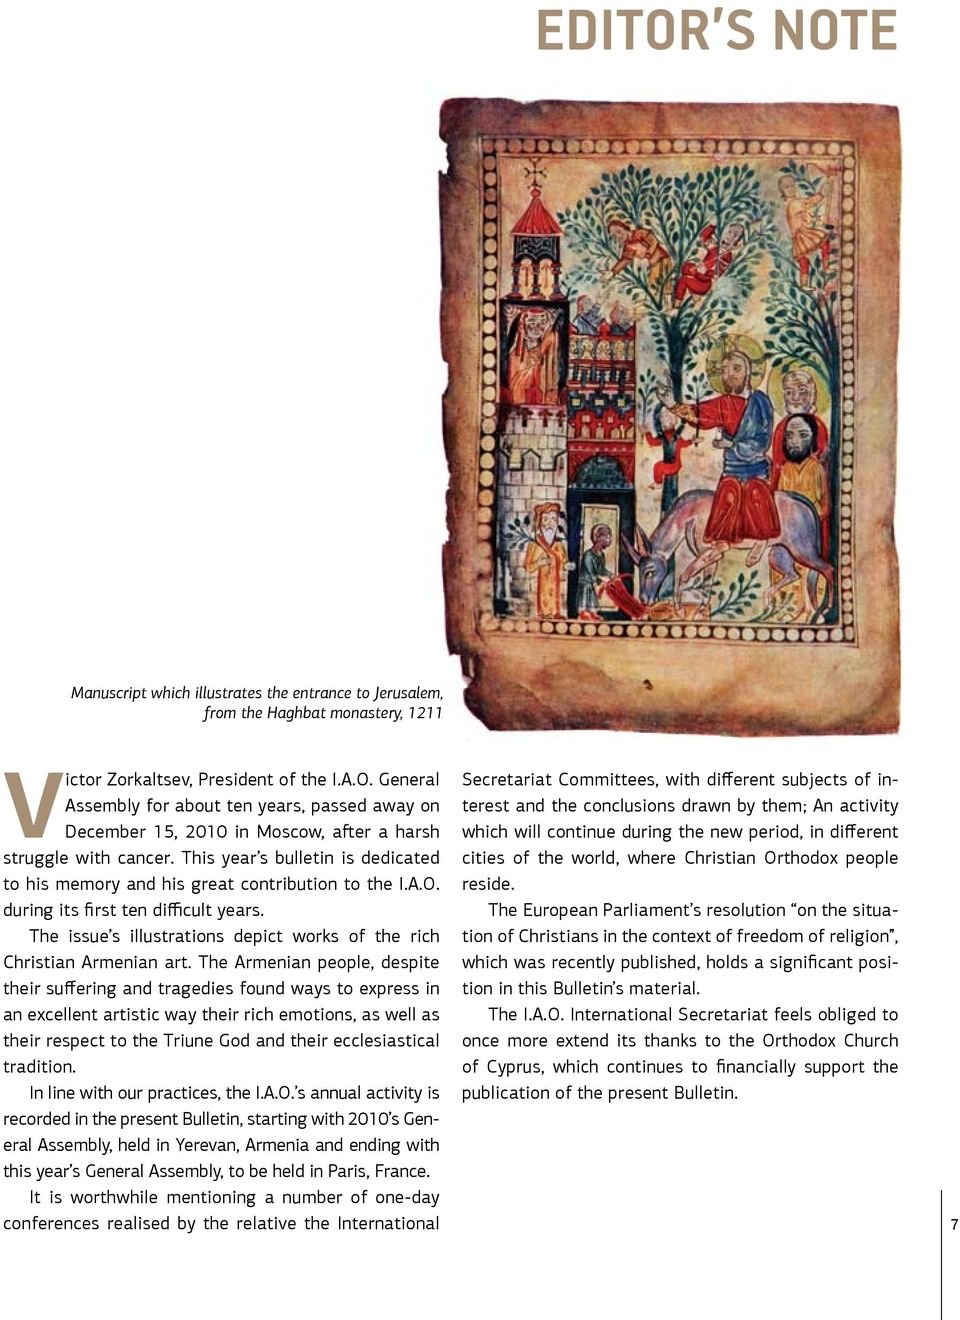 The issue s illustrations depict works of the rich Christian Armenian art.